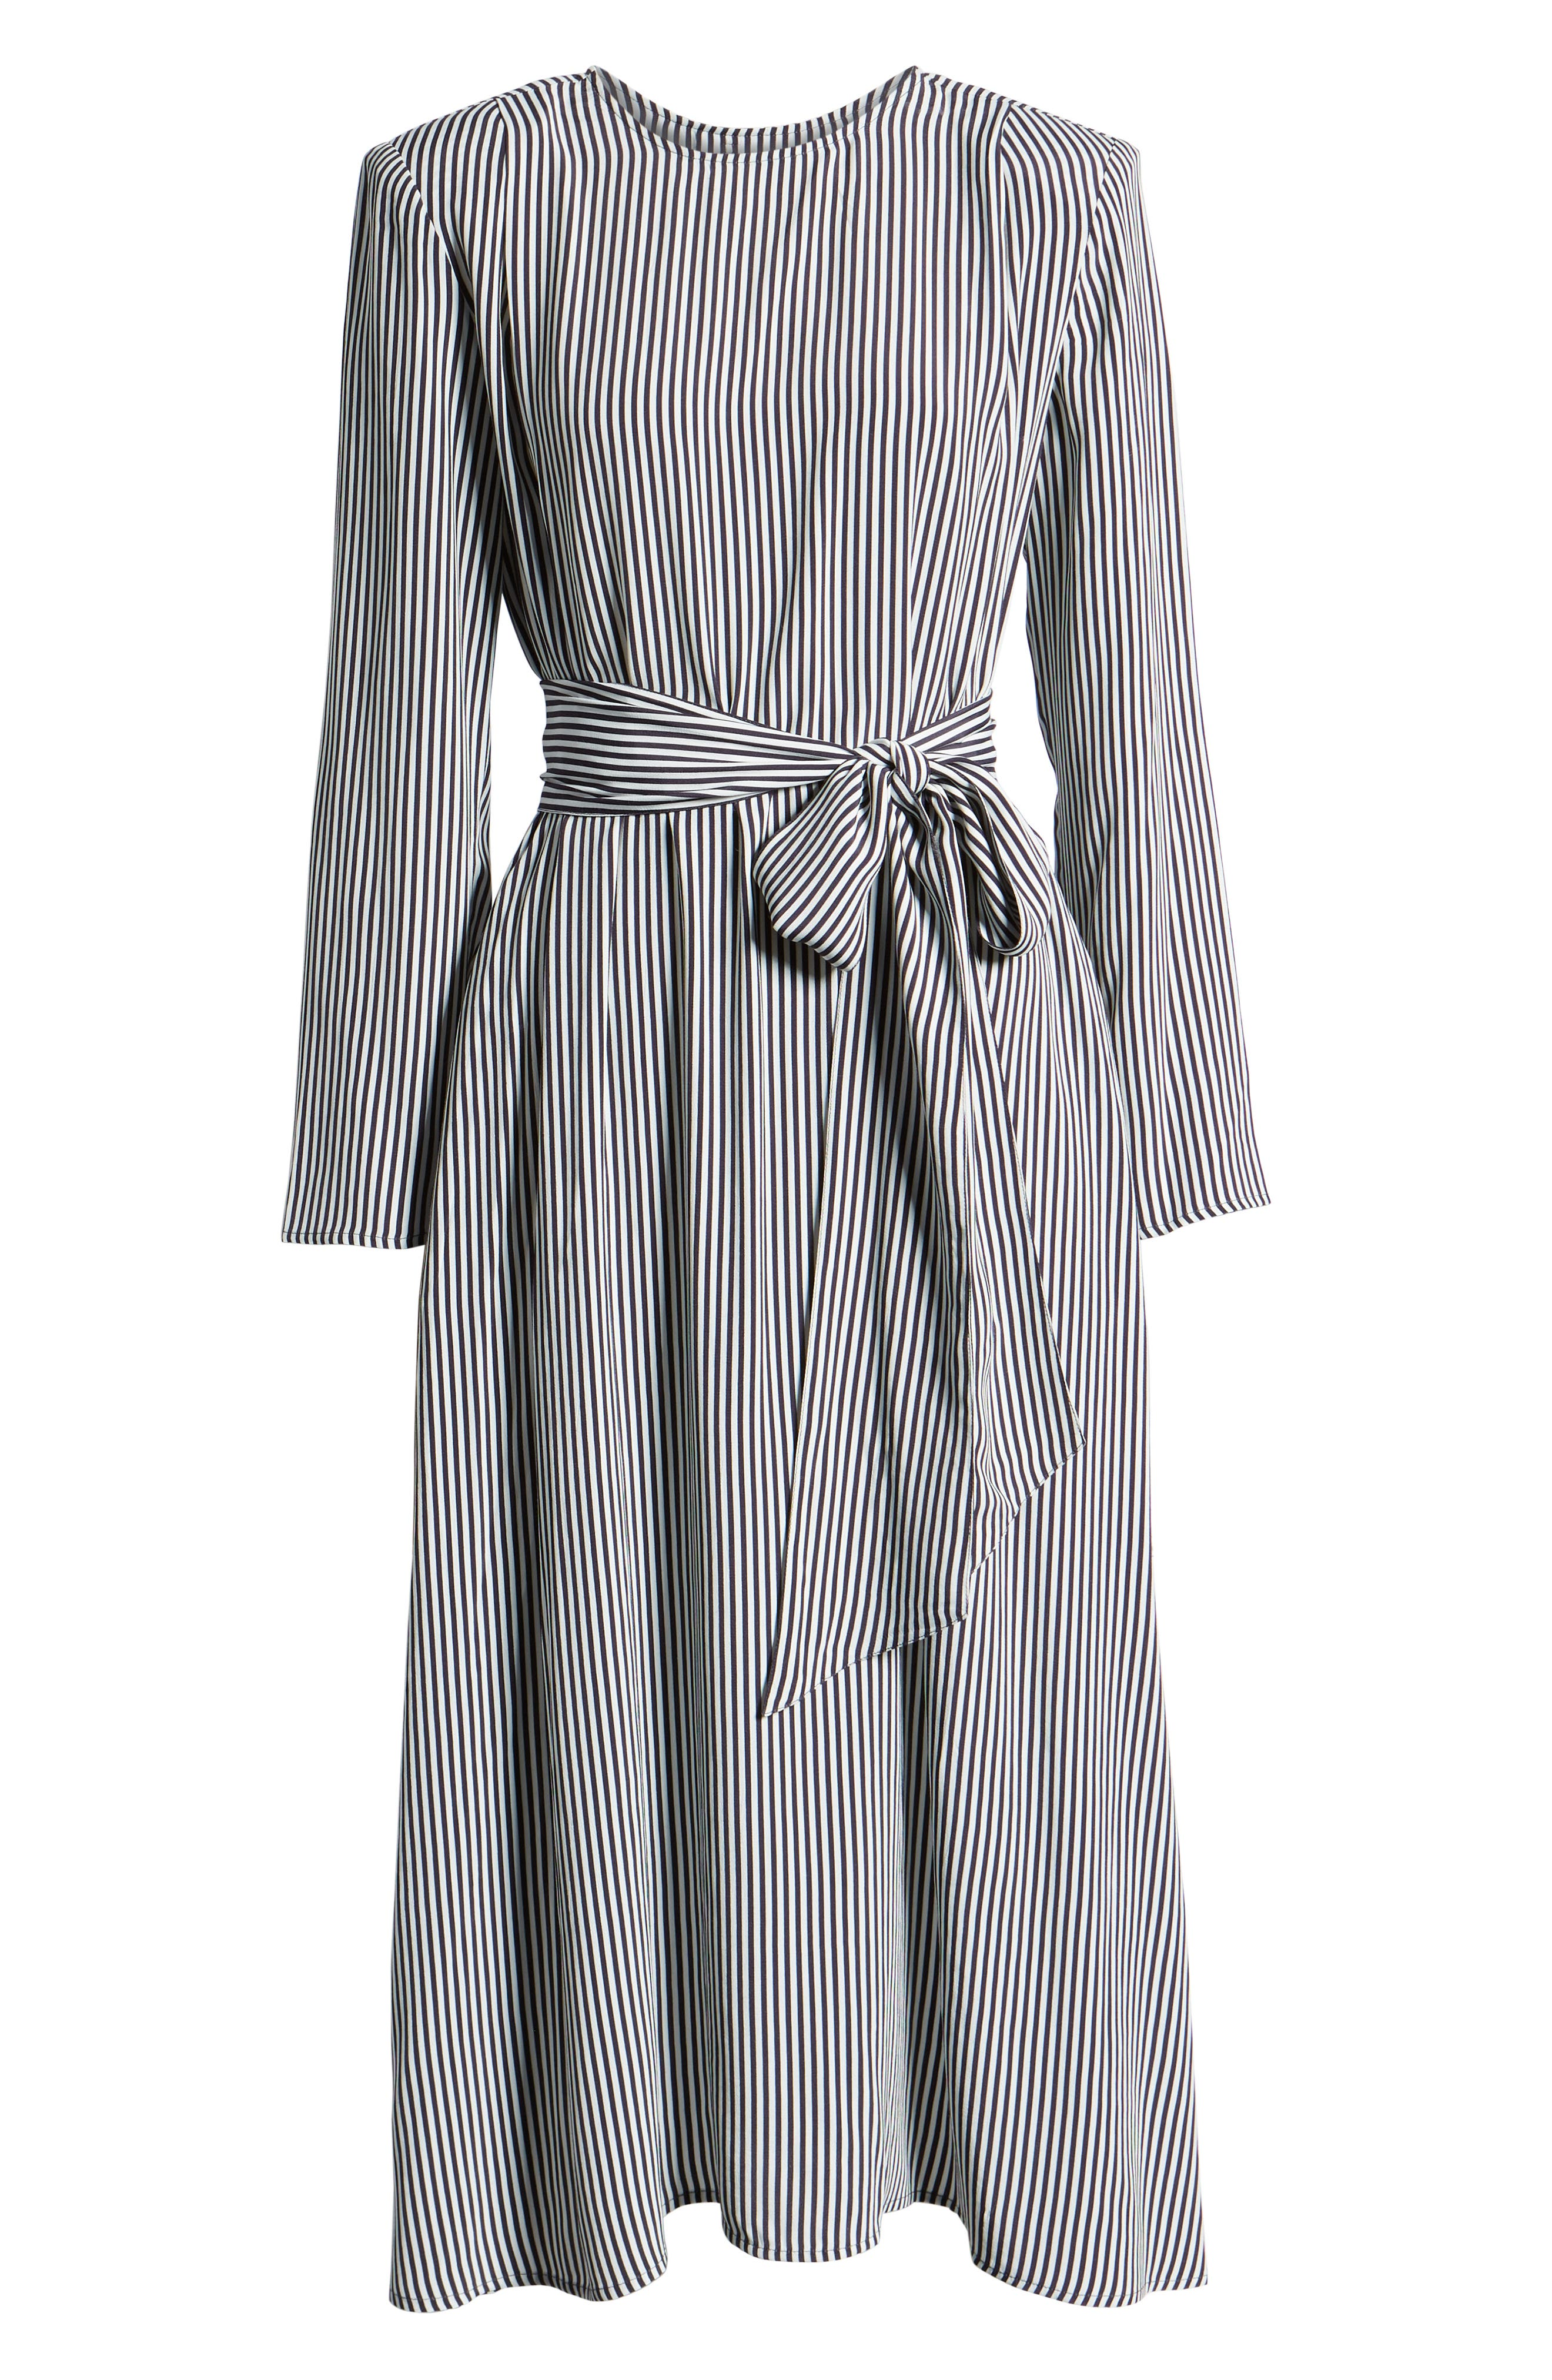 Belted Midi Dress,                             Alternate thumbnail 7, color,                             NAVY NIGHT TWO STRIPE